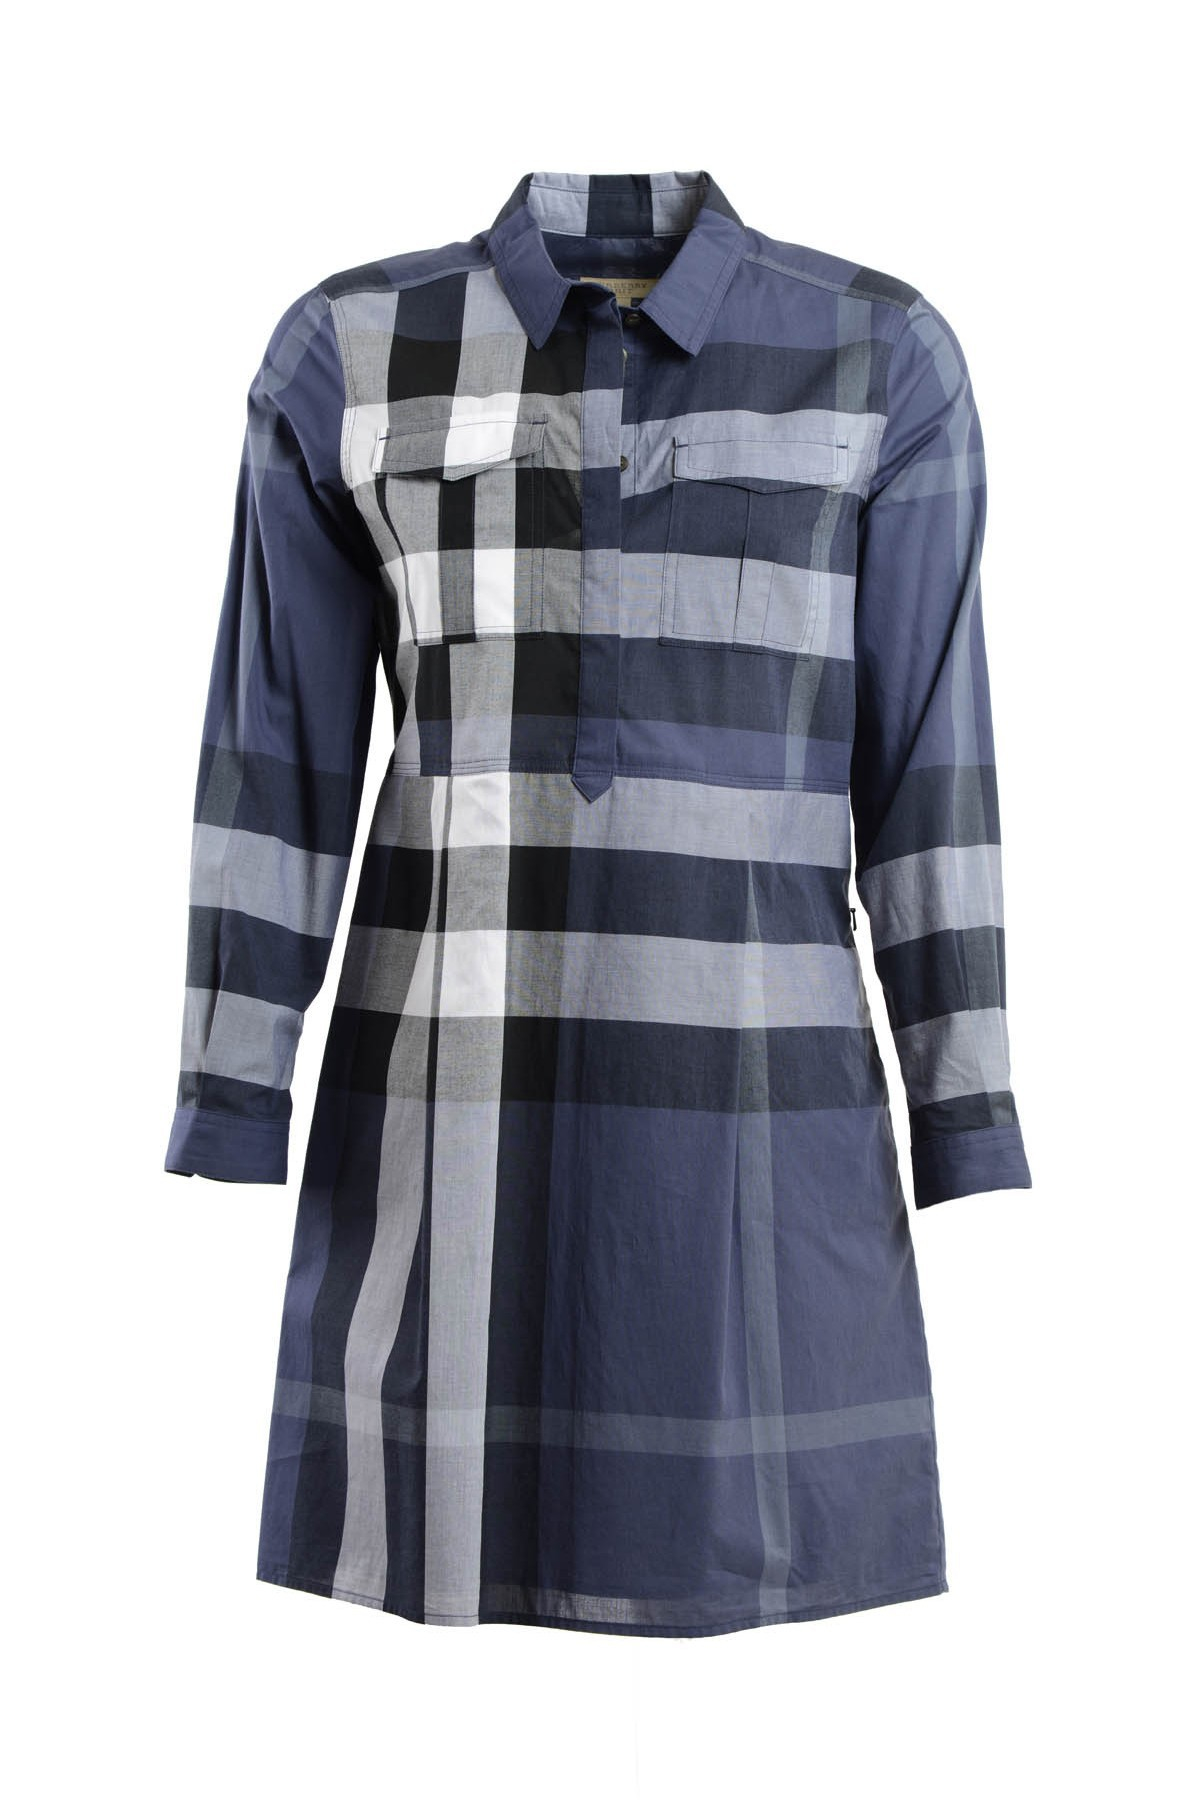 Burberry Peggie Check Shirt Dress In Blue Lyst